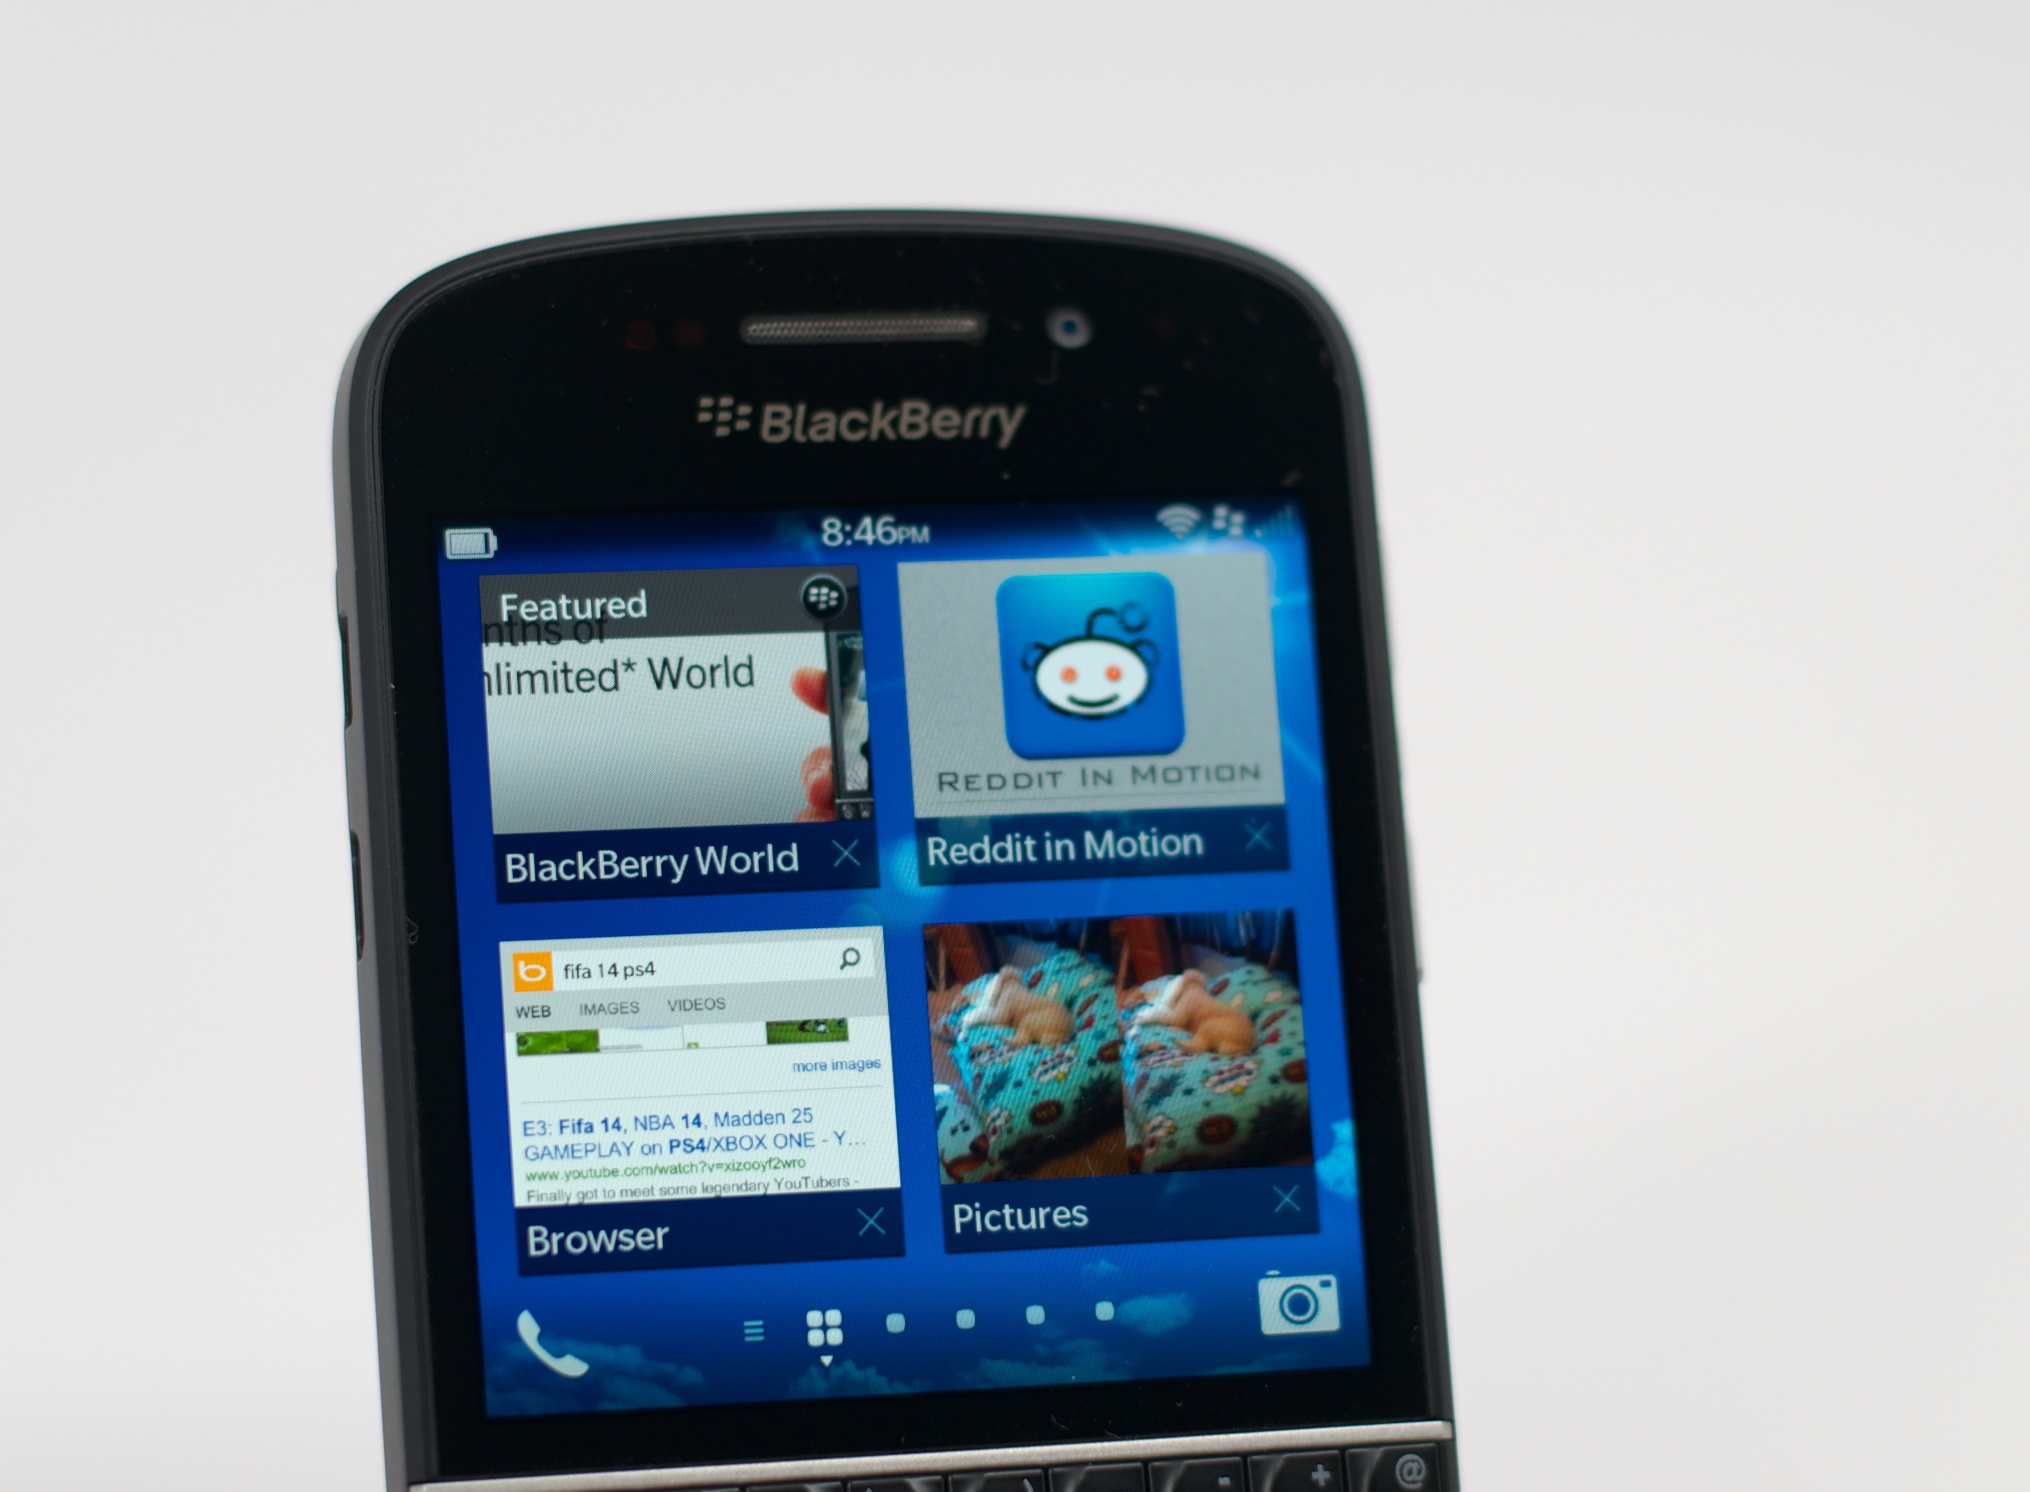 Verizon Blackberry Q10 Review 4g Lte Theres Is A Small Learning Curve To 10 But It Easy Pick Up And Gestures Taps Are More Reliable On The Than Z10